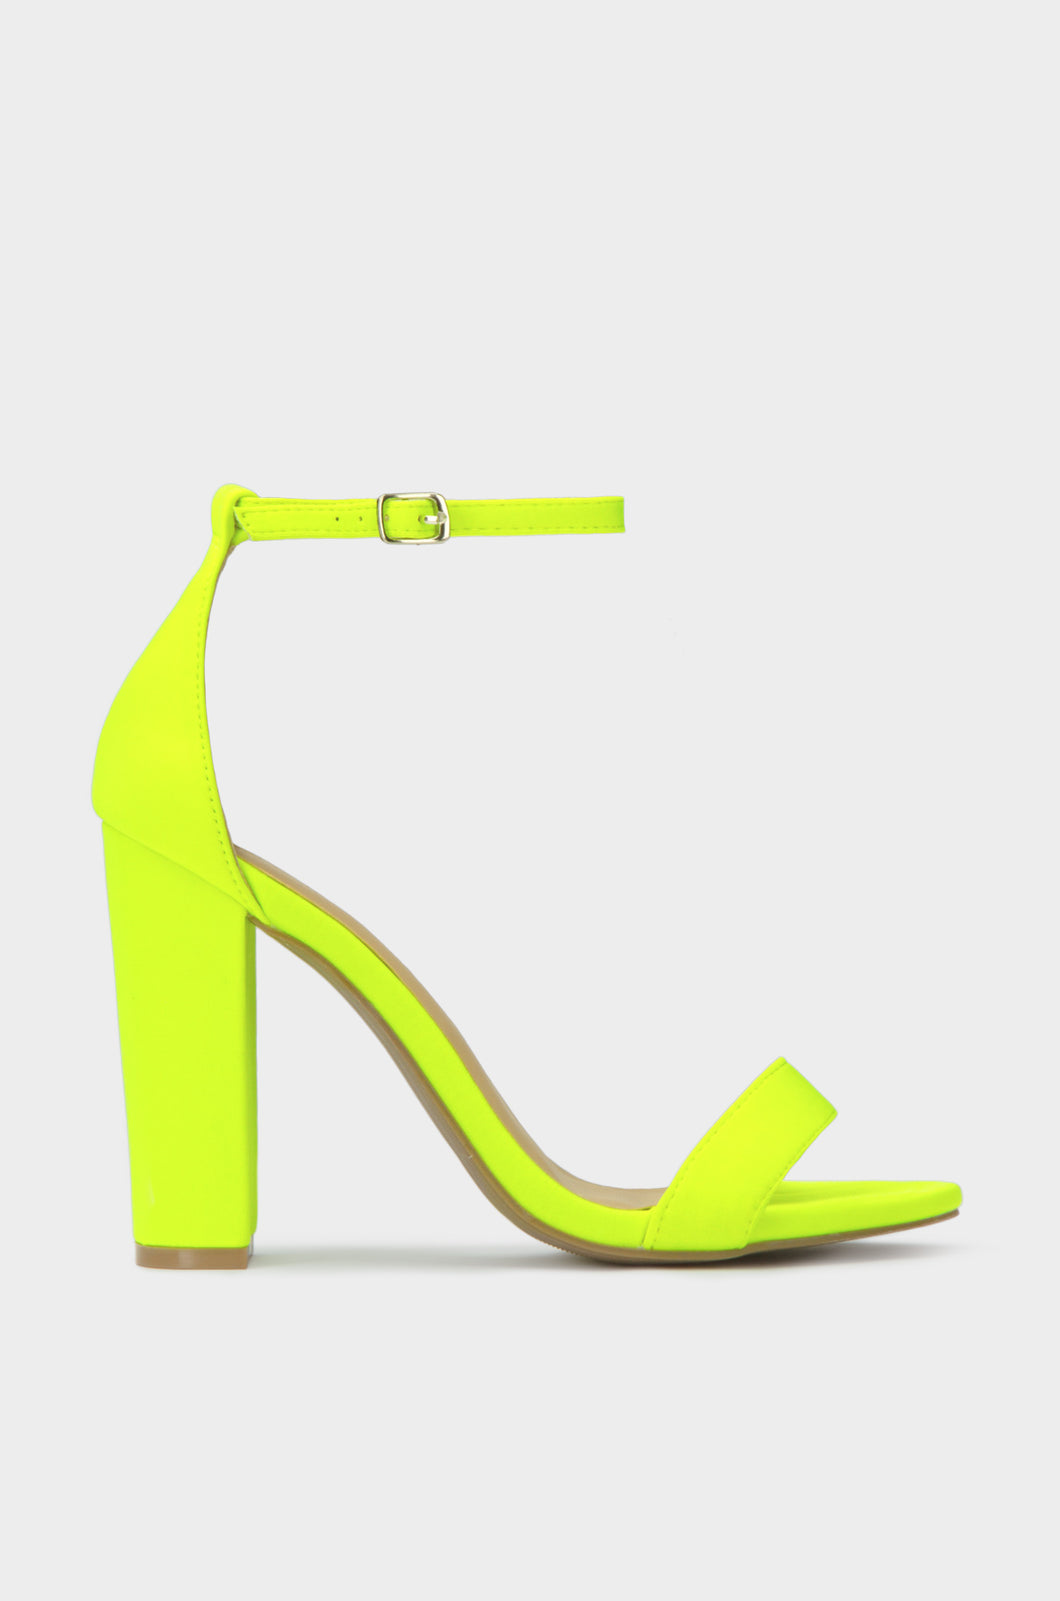 Simple Pleasures - Neon Yellow